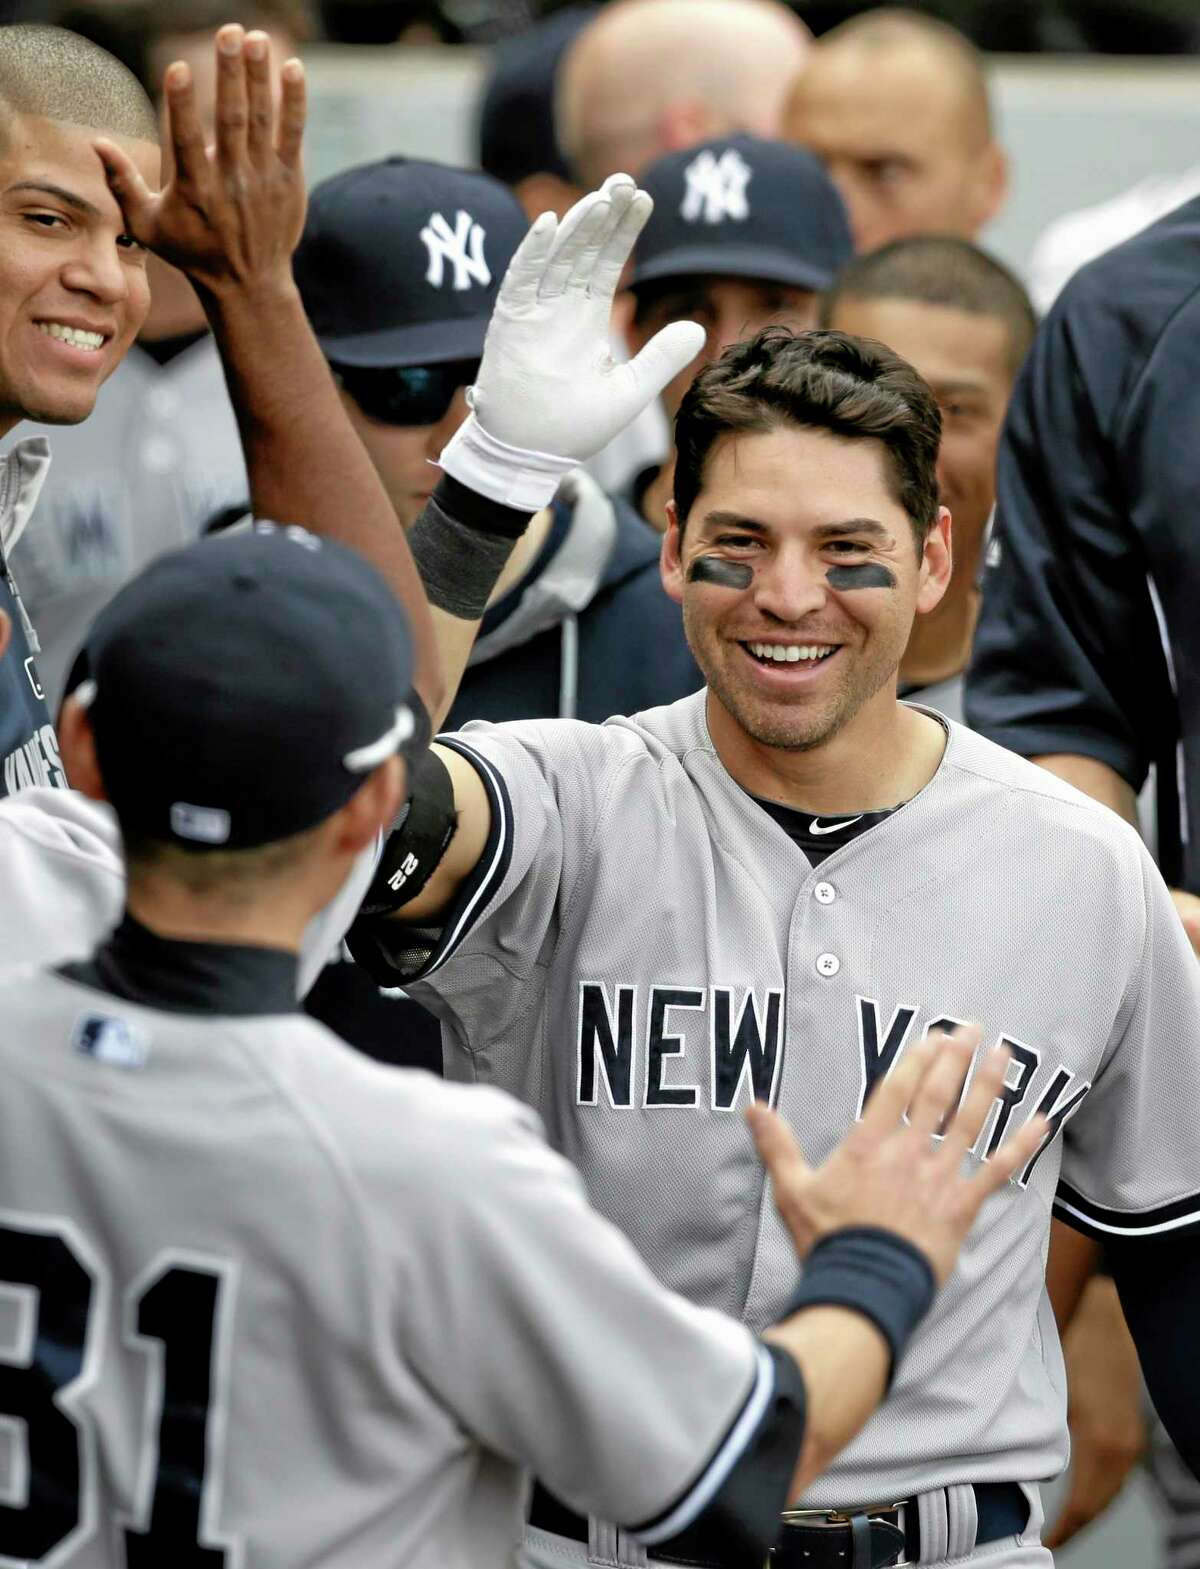 The Yankees' Jacoby Ellsbury celebrates with teammates after hitting a home run during the 10th inning Saturday.